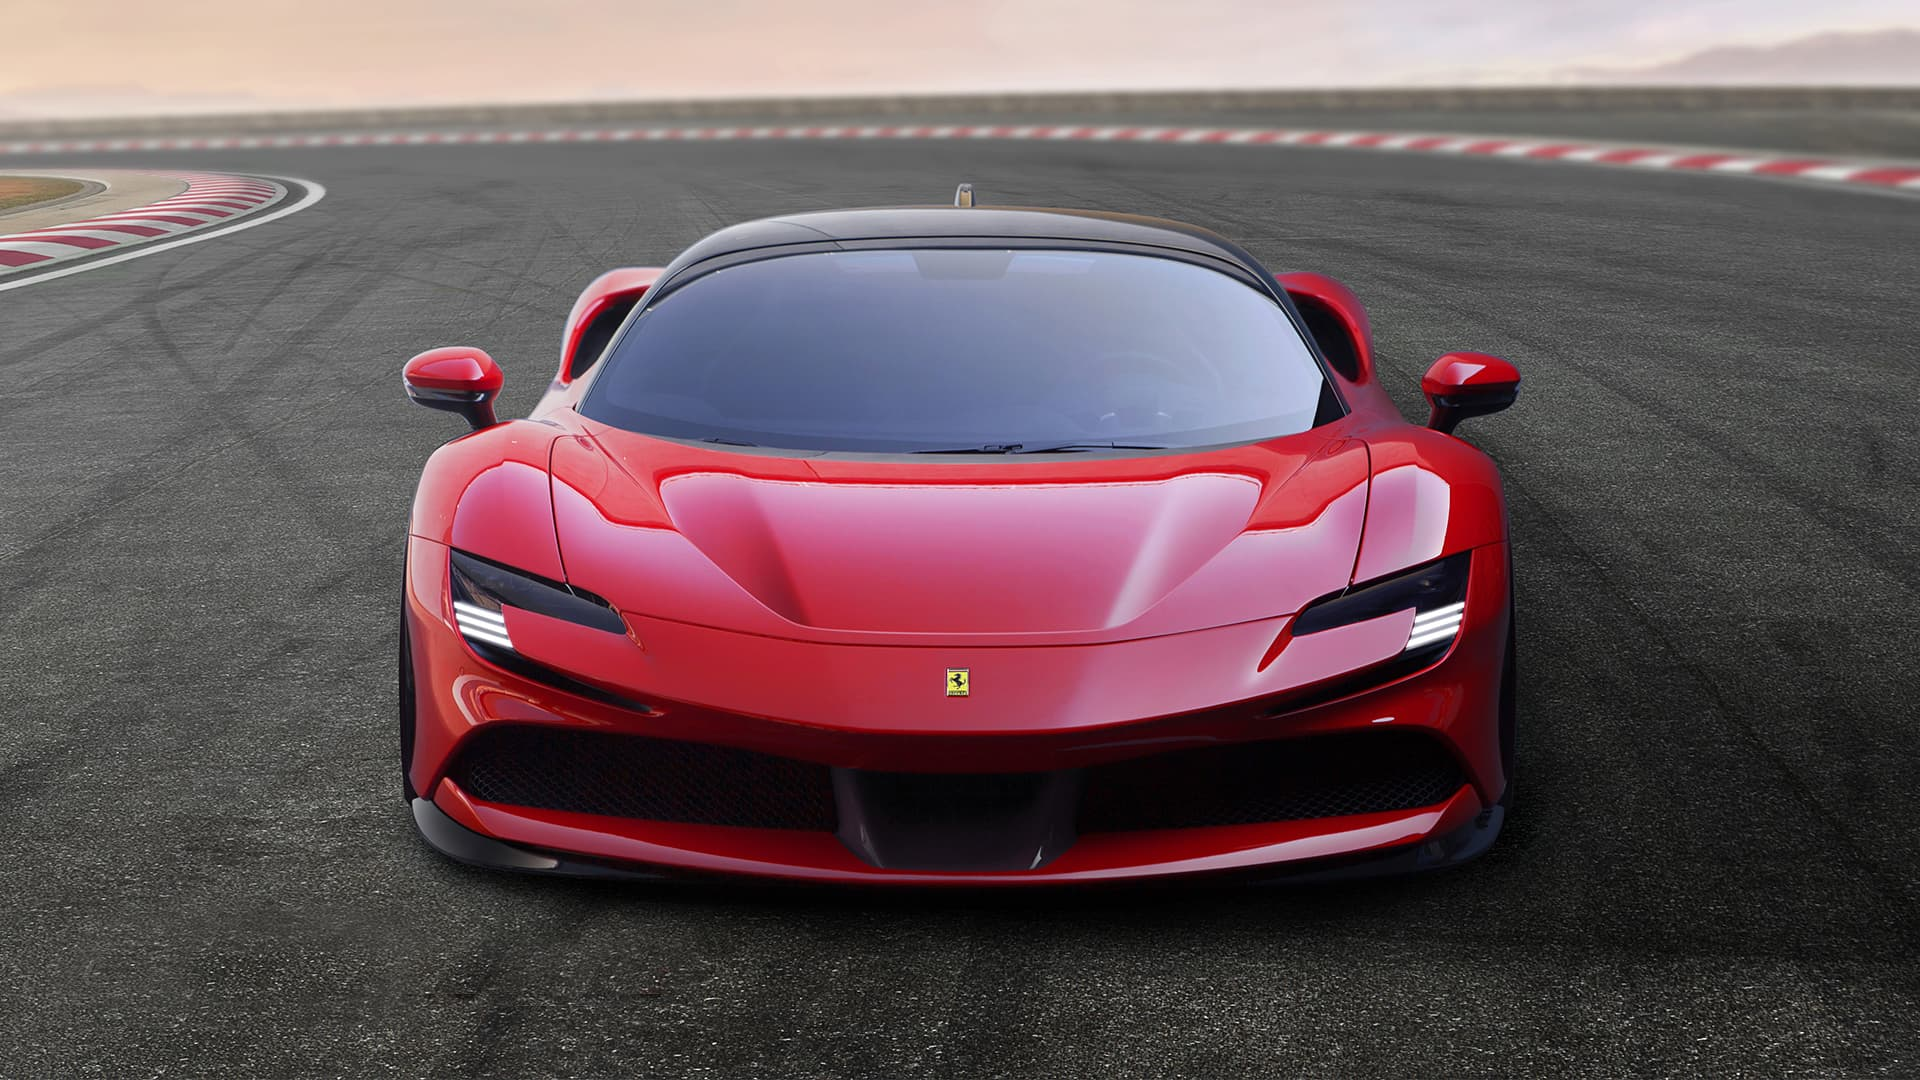 Ferrari goes electric with its most powerful street-legal car ever: the SF90 Stradale